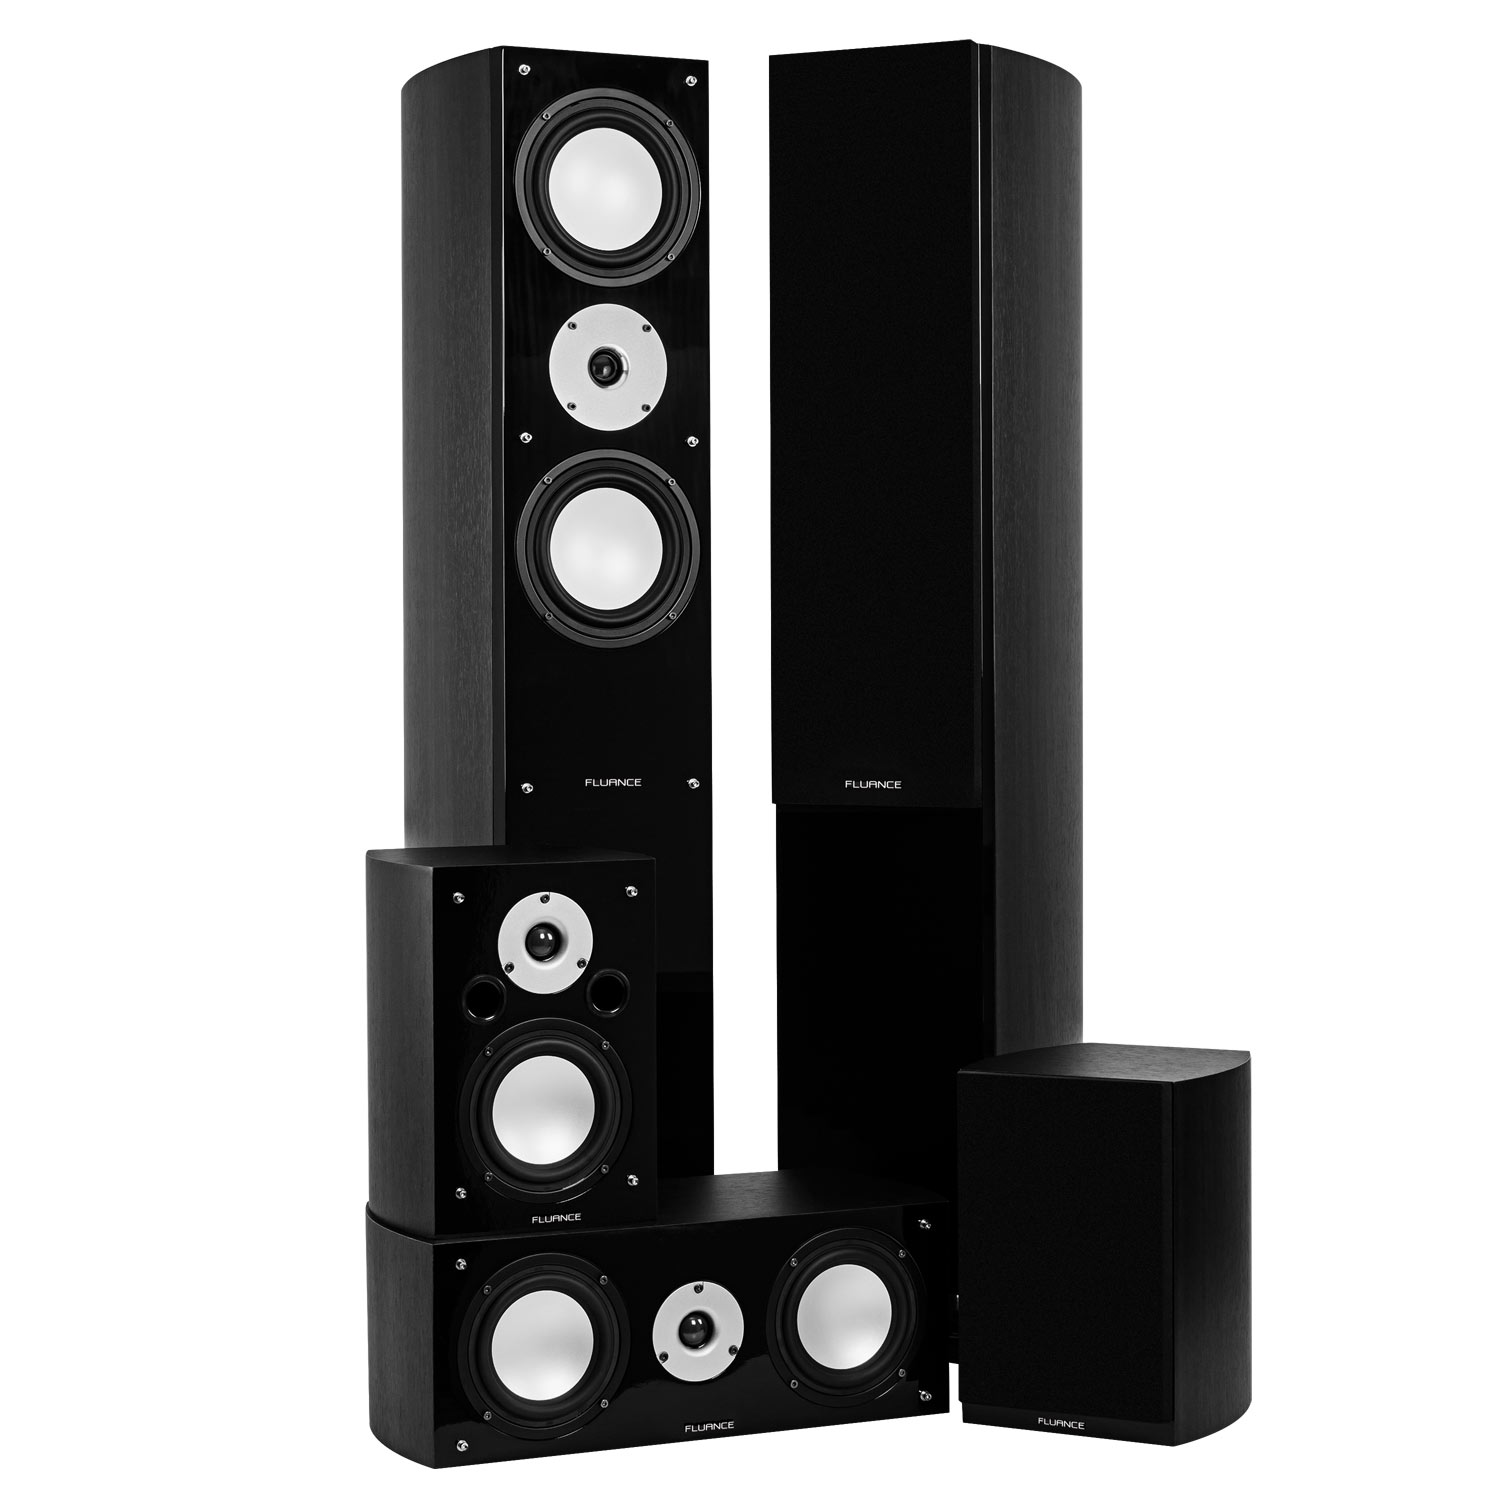 Fluance XLHTBBK High Performance 5 Speaker Surround Sound Home Theater Speaker System (Black Ash) by Fluance